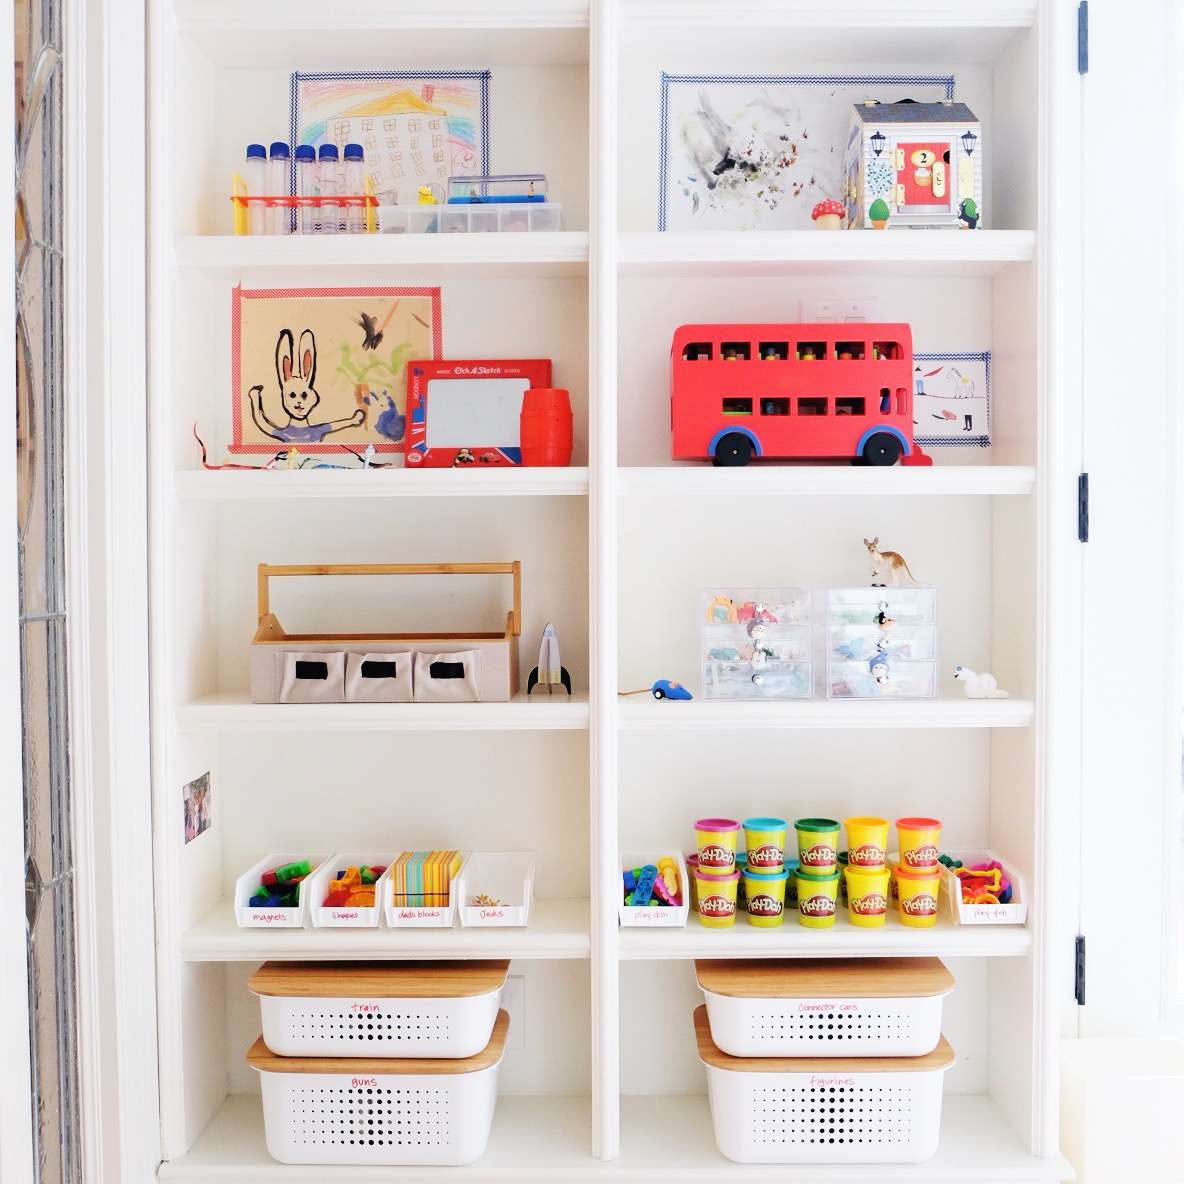 Built-in shelving in a kid's playroom